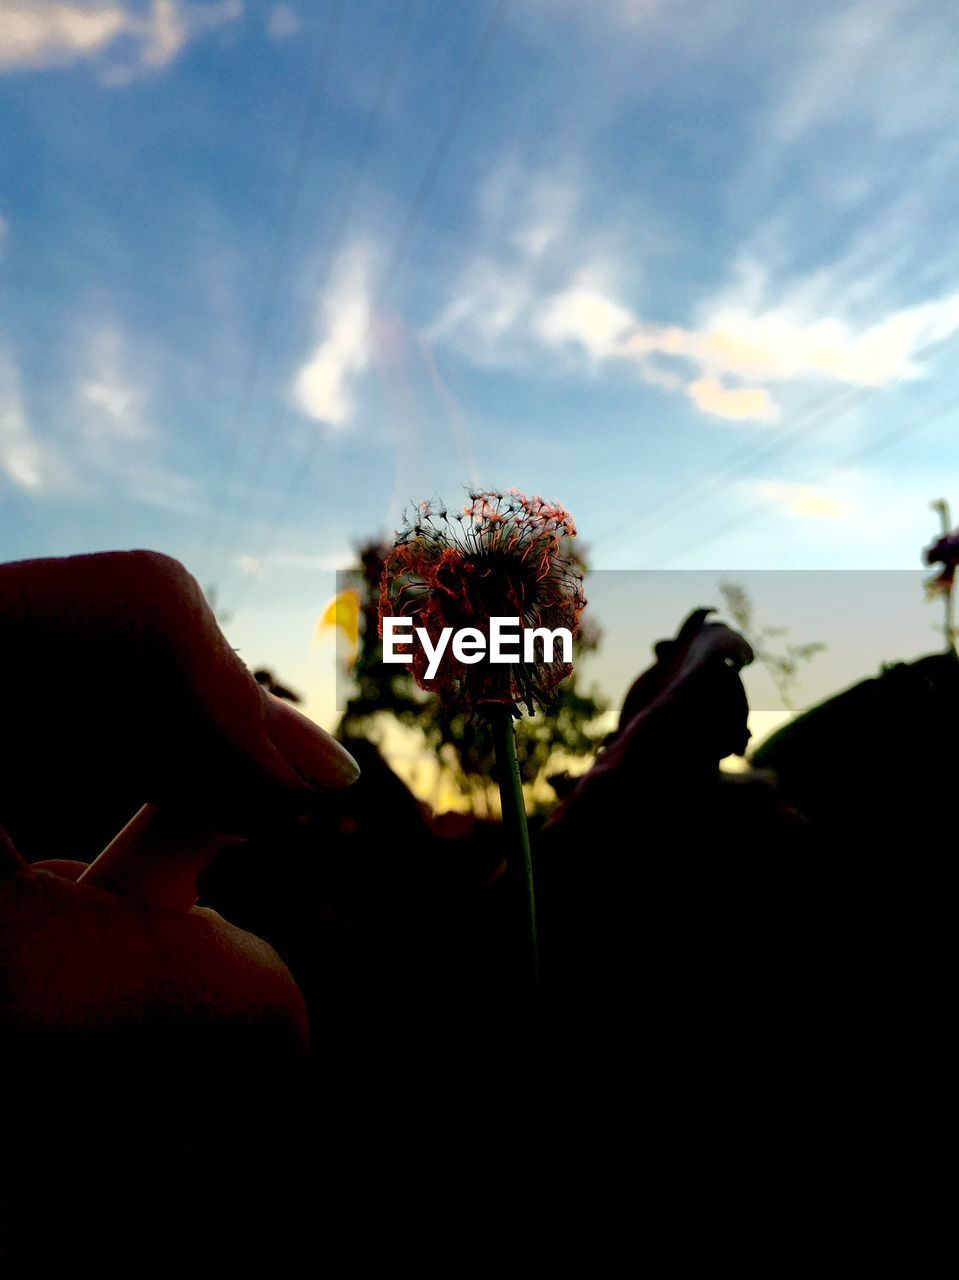 flower, human hand, nature, one person, silhouette, sky, beauty in nature, human body part, holding, fragility, flower head, real people, outdoors, growth, sunset, close-up, freshness, day, people